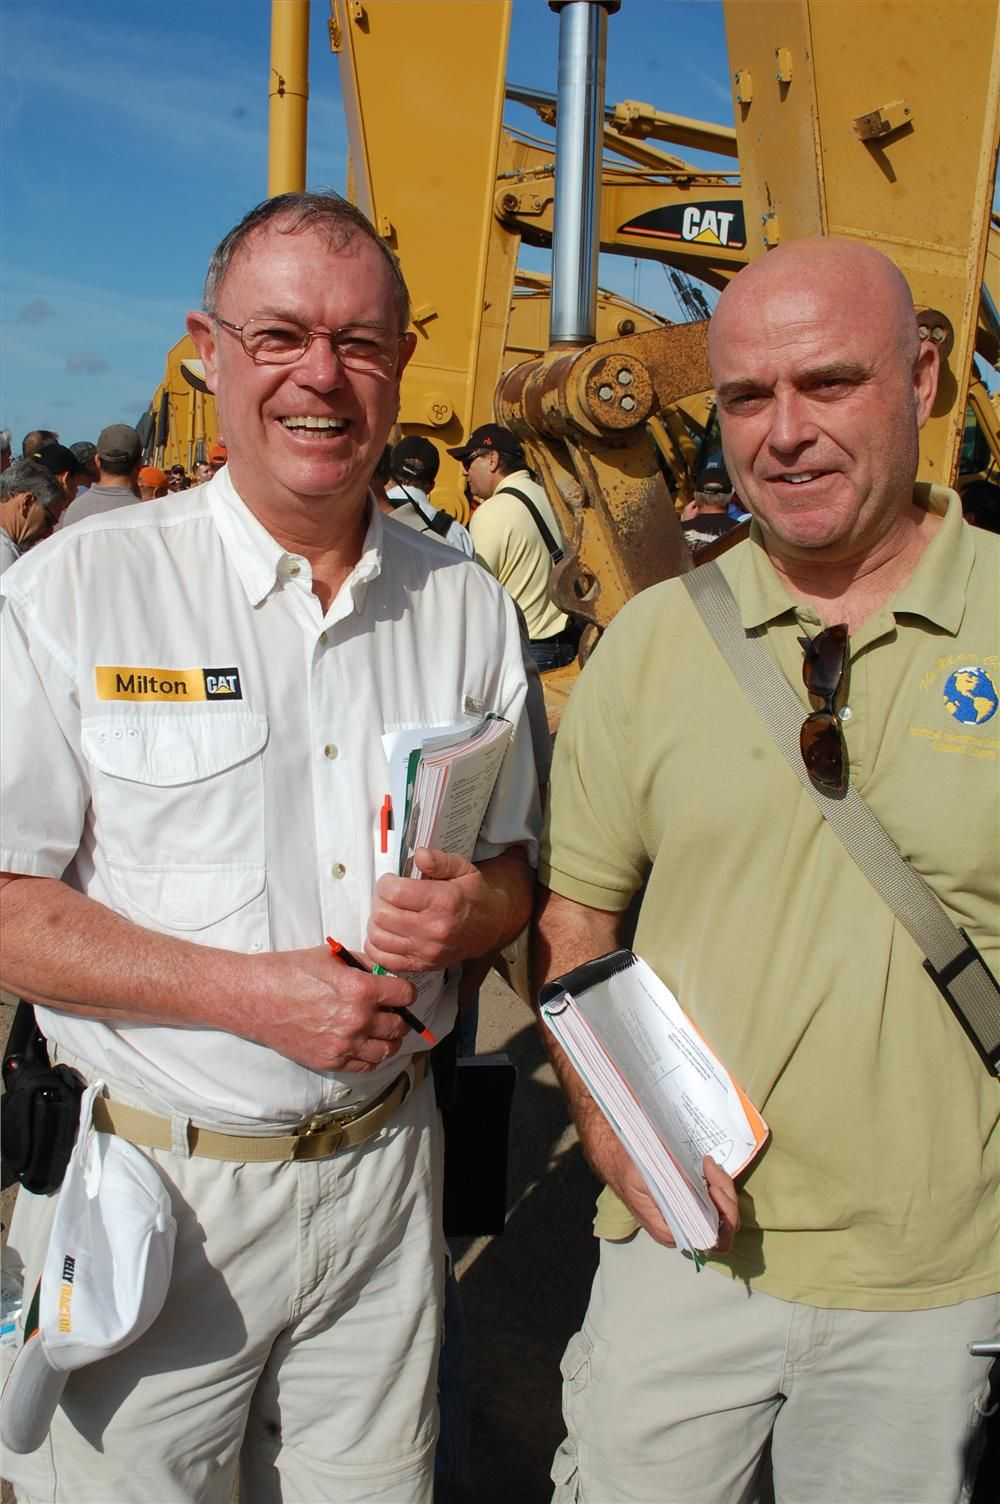 Paul Magoon (L) of Milton CAT and Bryn Smith of The N.I.C.E. Company traveled all the way from eastern Massachusetts to observe excavator prices.